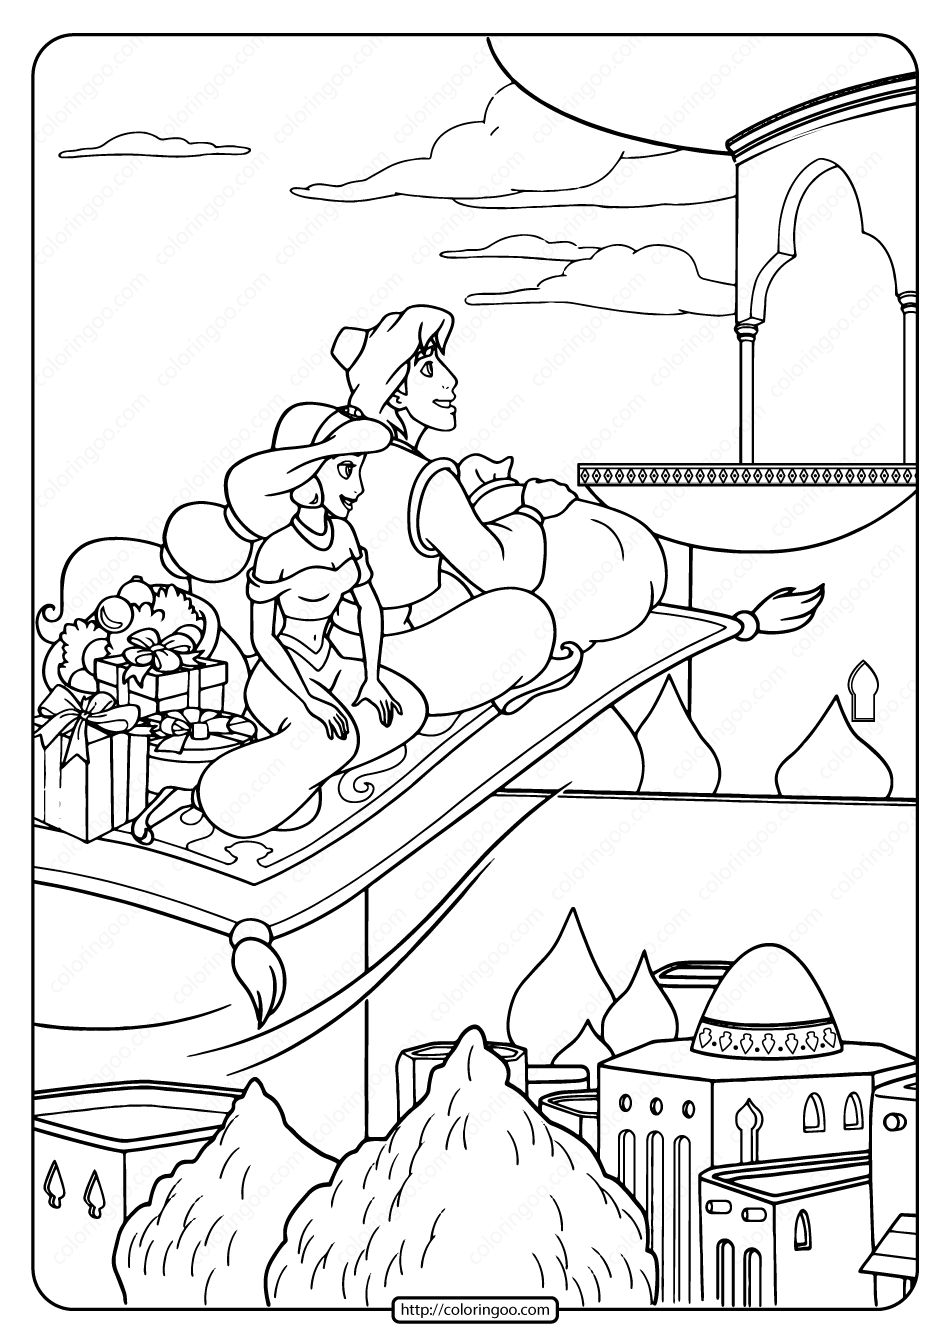 Princess Jasmine Got A Gift On The Day Of Christmas Coloring Pages ... | 1344x950